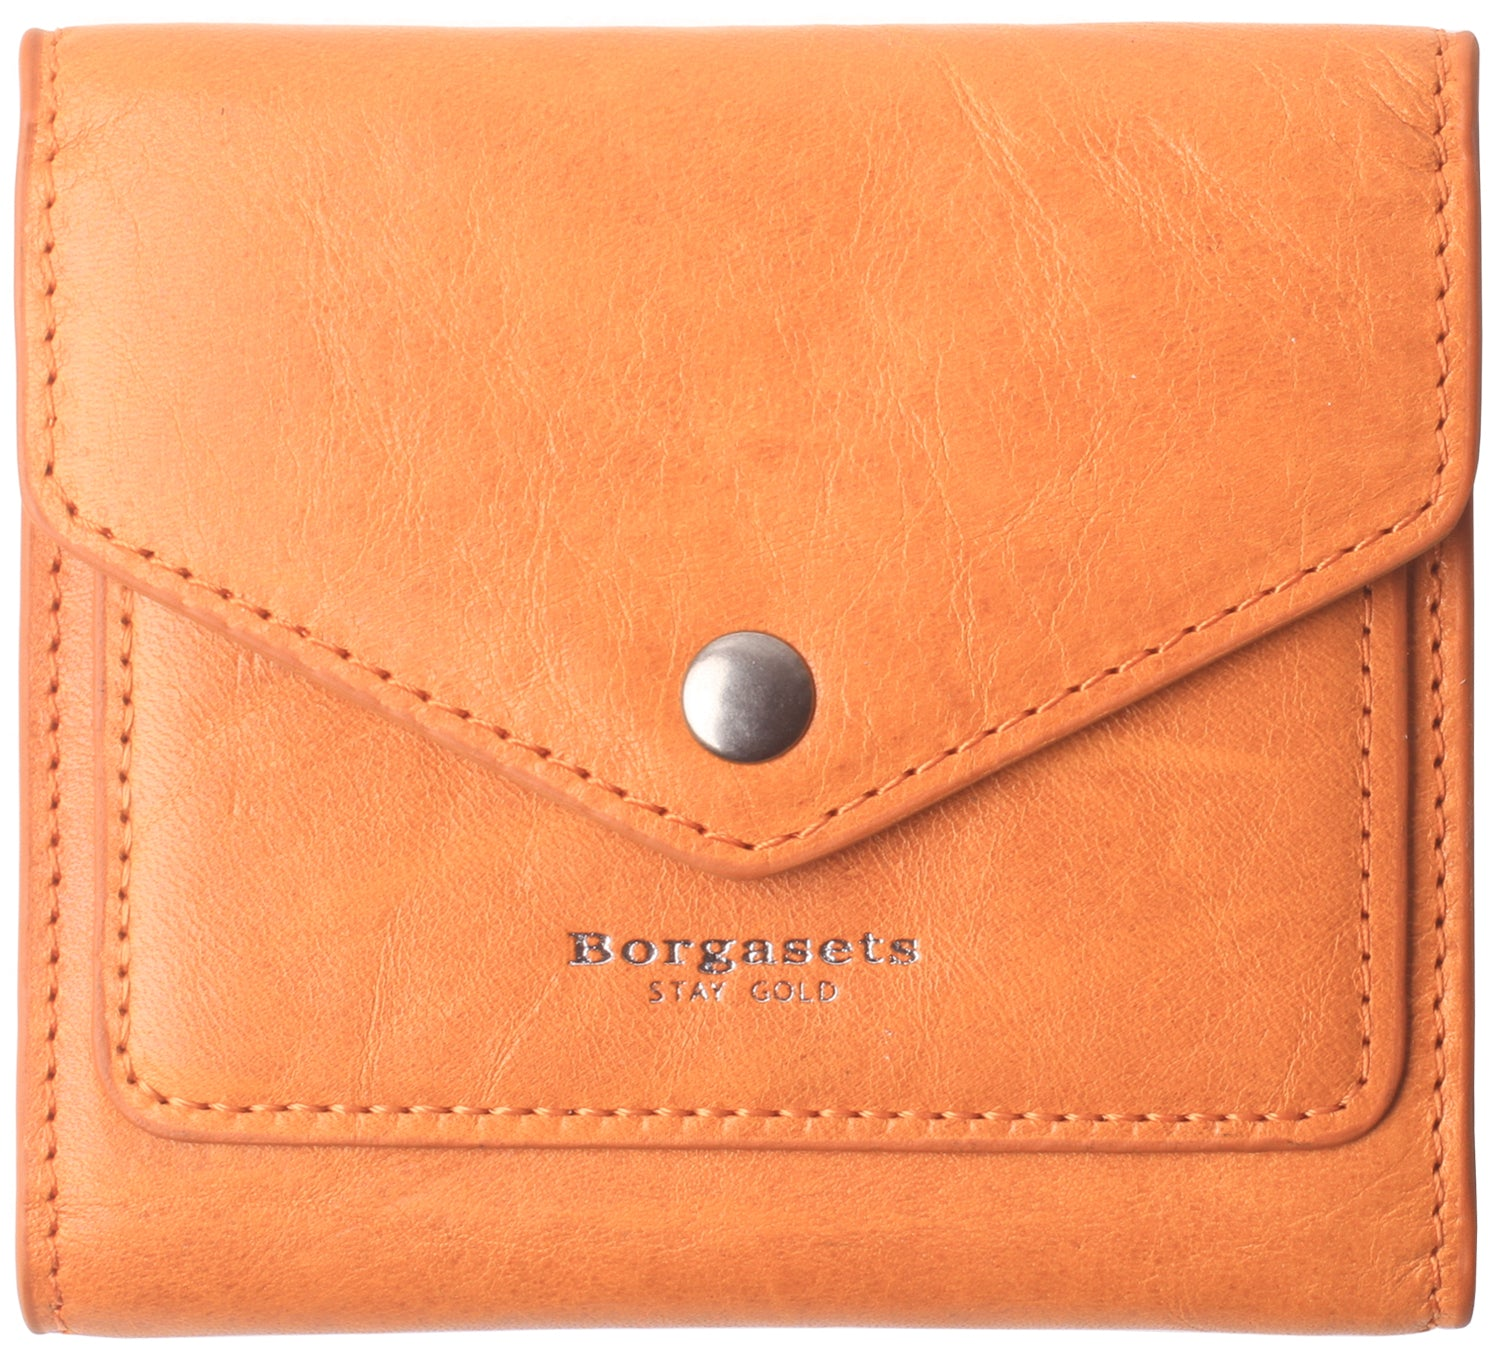 Small Leather Wallet for Women, RFID Blocking Women's Credit Card Holder Mini Bifold Pocket Purse BG1023 orange - Borgasets